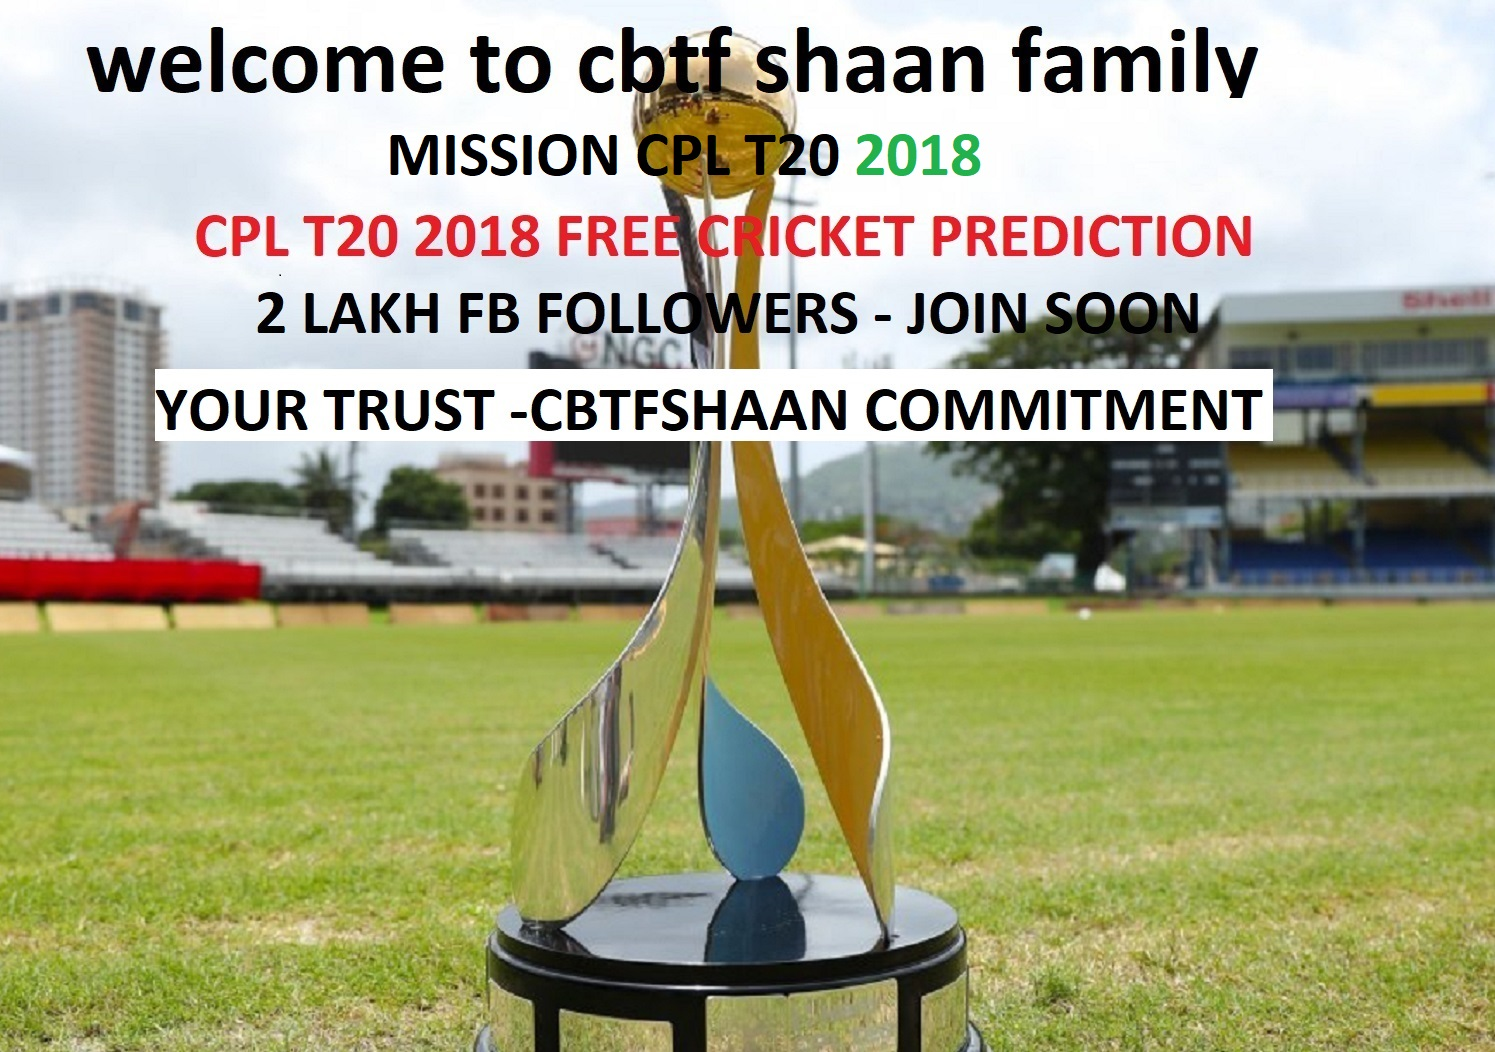 Free Cricket Betting Tips Online Help and Guide from Cricket Betting Tips Expert Cbtf Shaan OF Cpl T20 2018 Prediction d Betting Tips